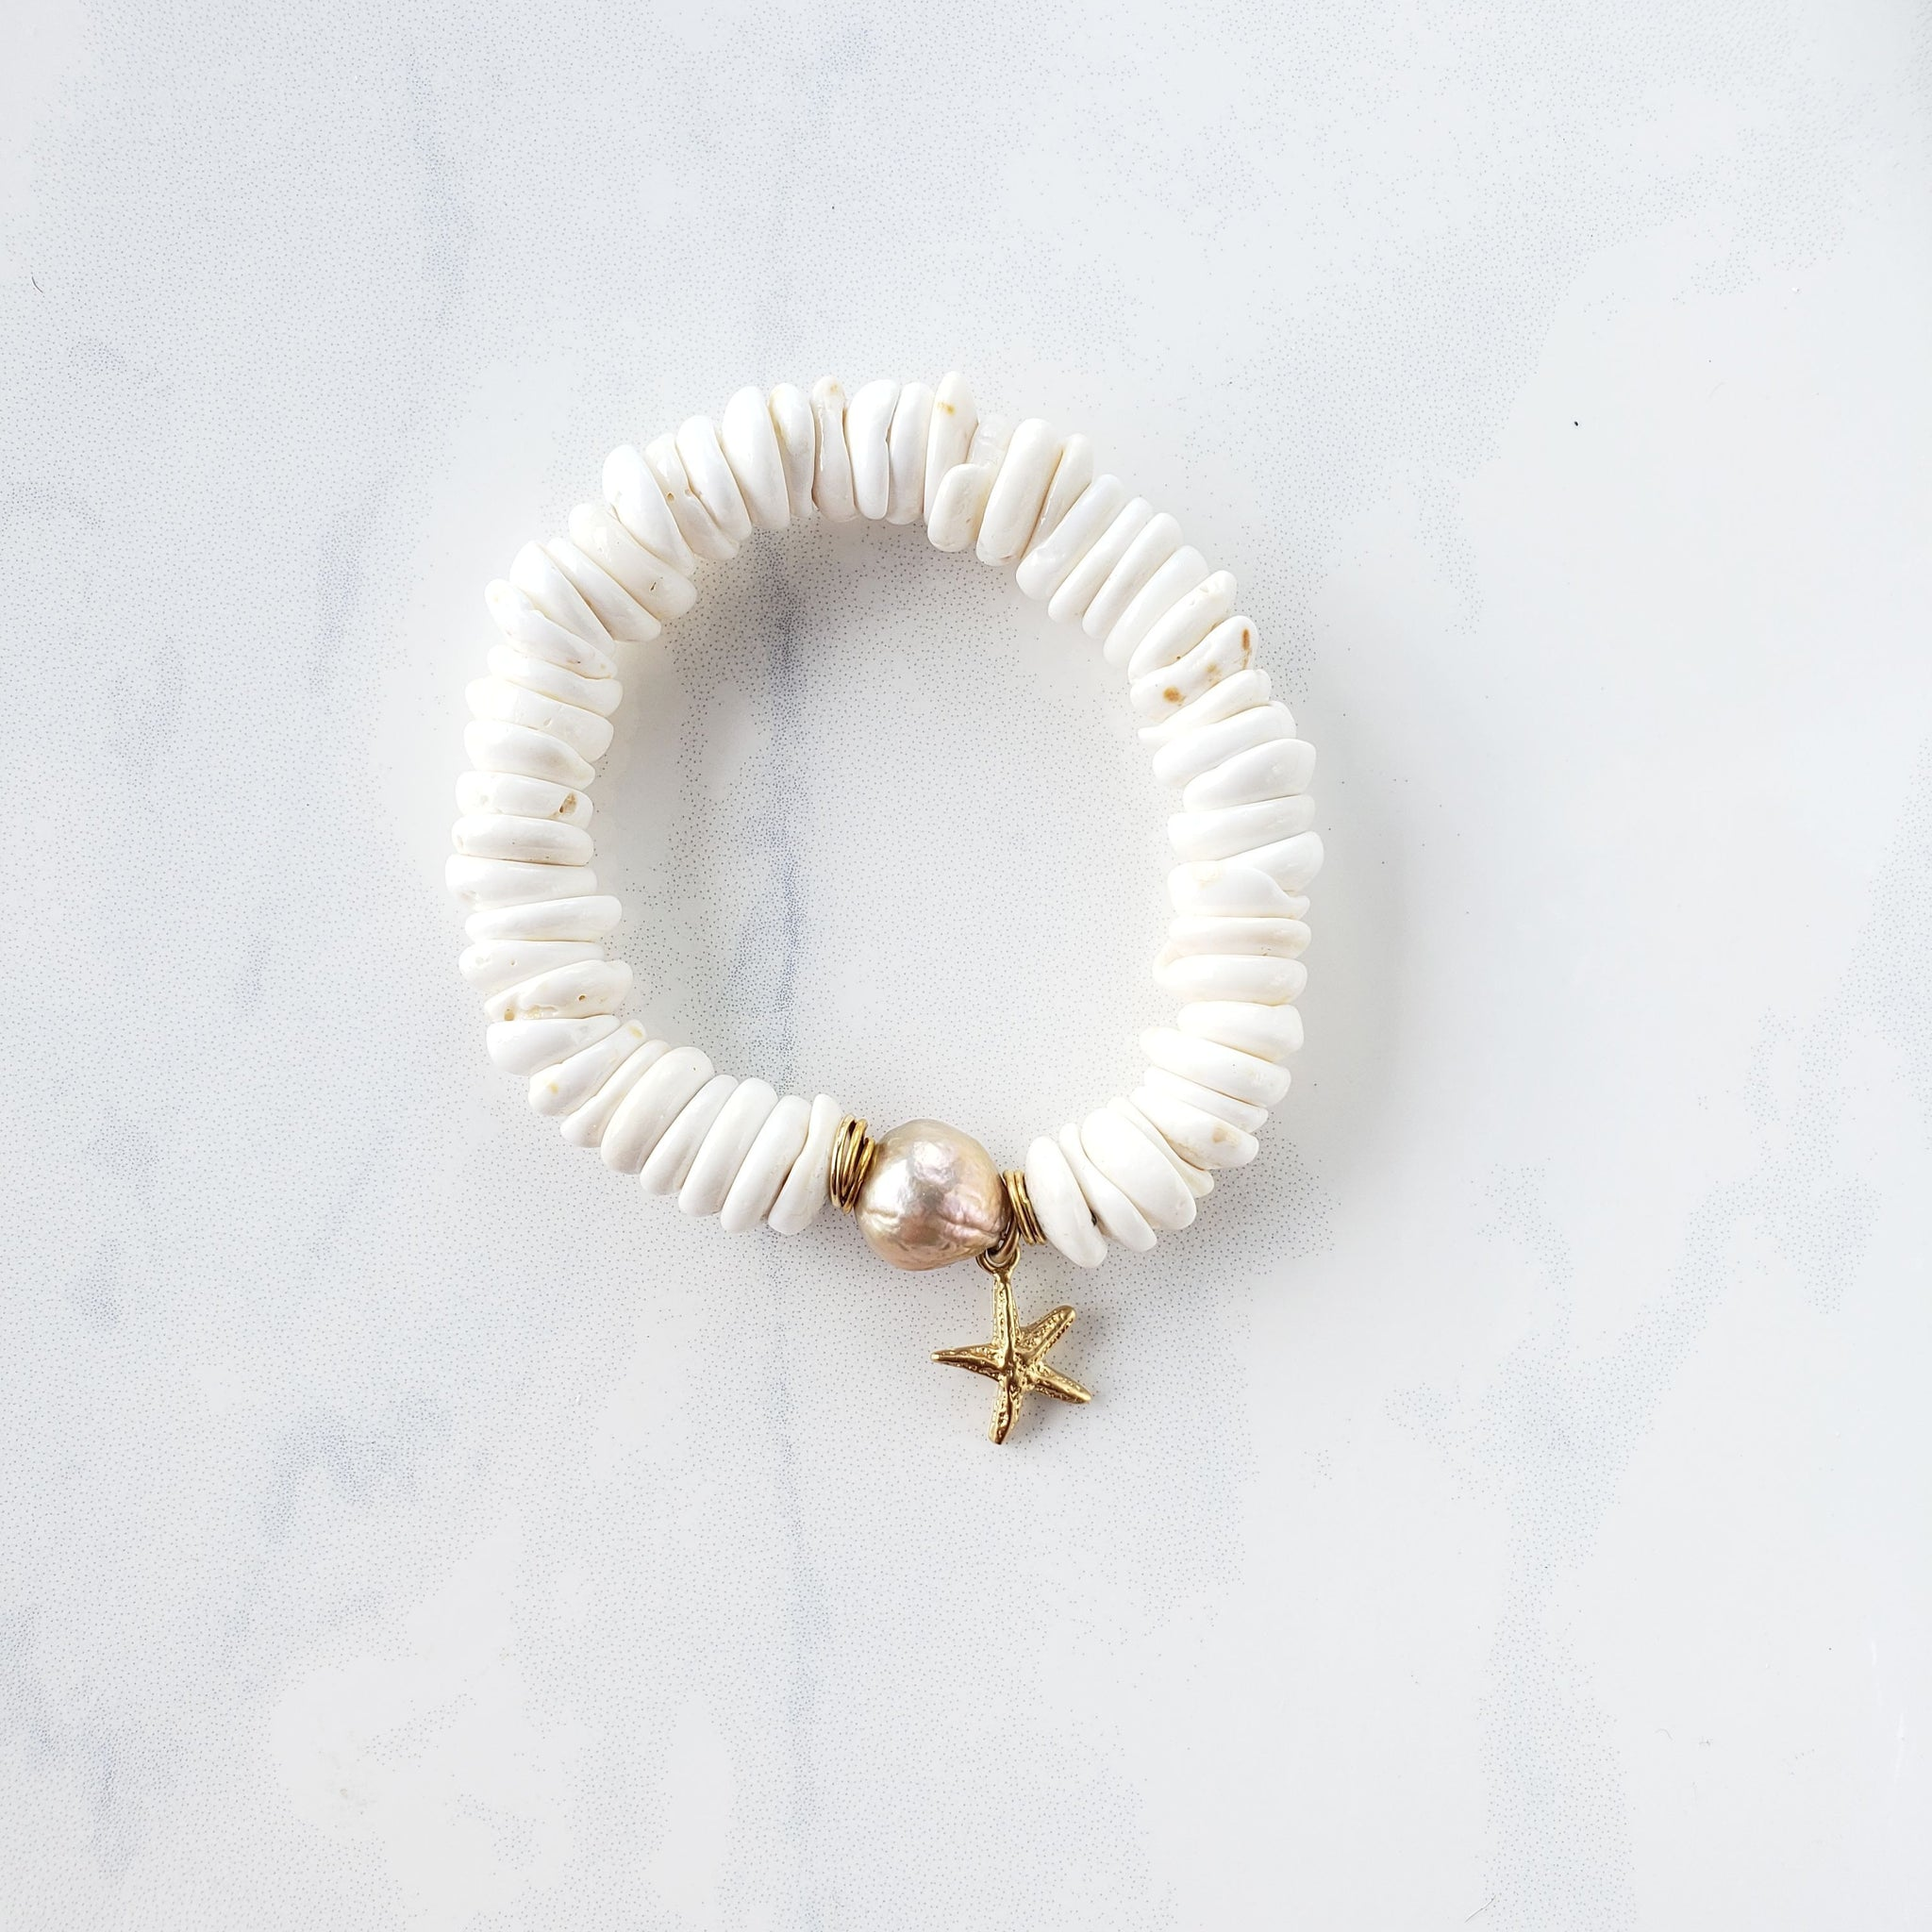 Puka Shell+Pearl Bracelet - Sati Gems Hawaii Healing Crystal Gemstone Jewelry